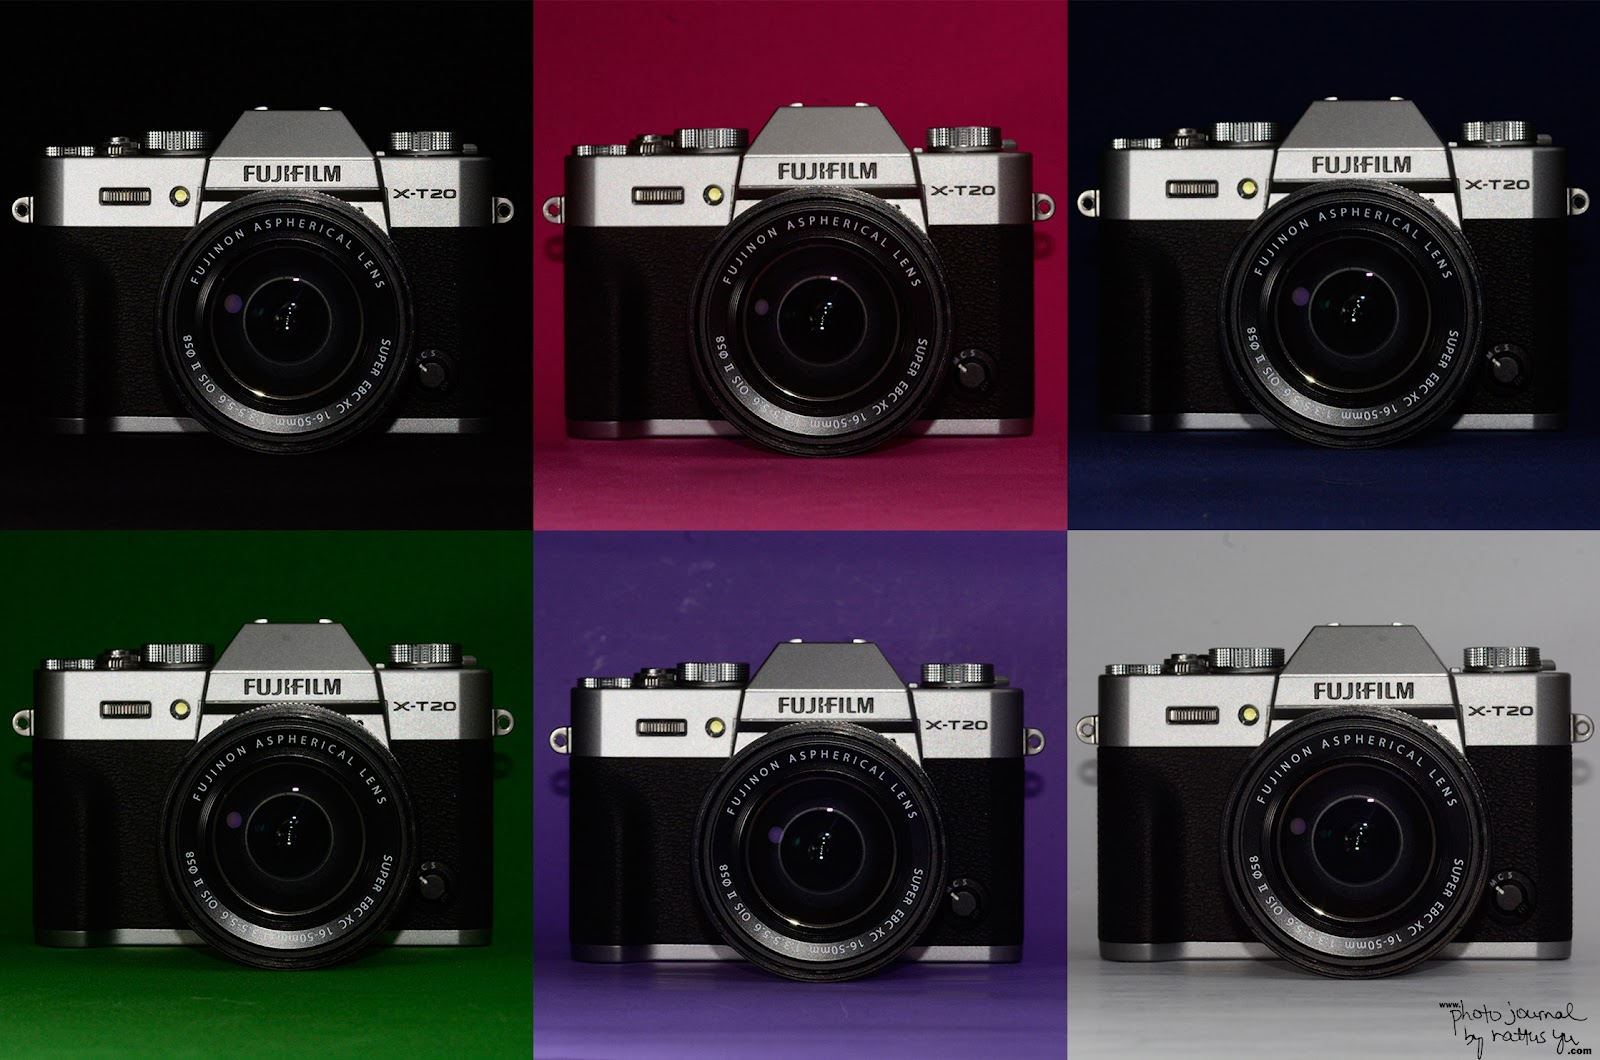 Fujifilm X-T20 Mirrorless Camera Hands-On Experience